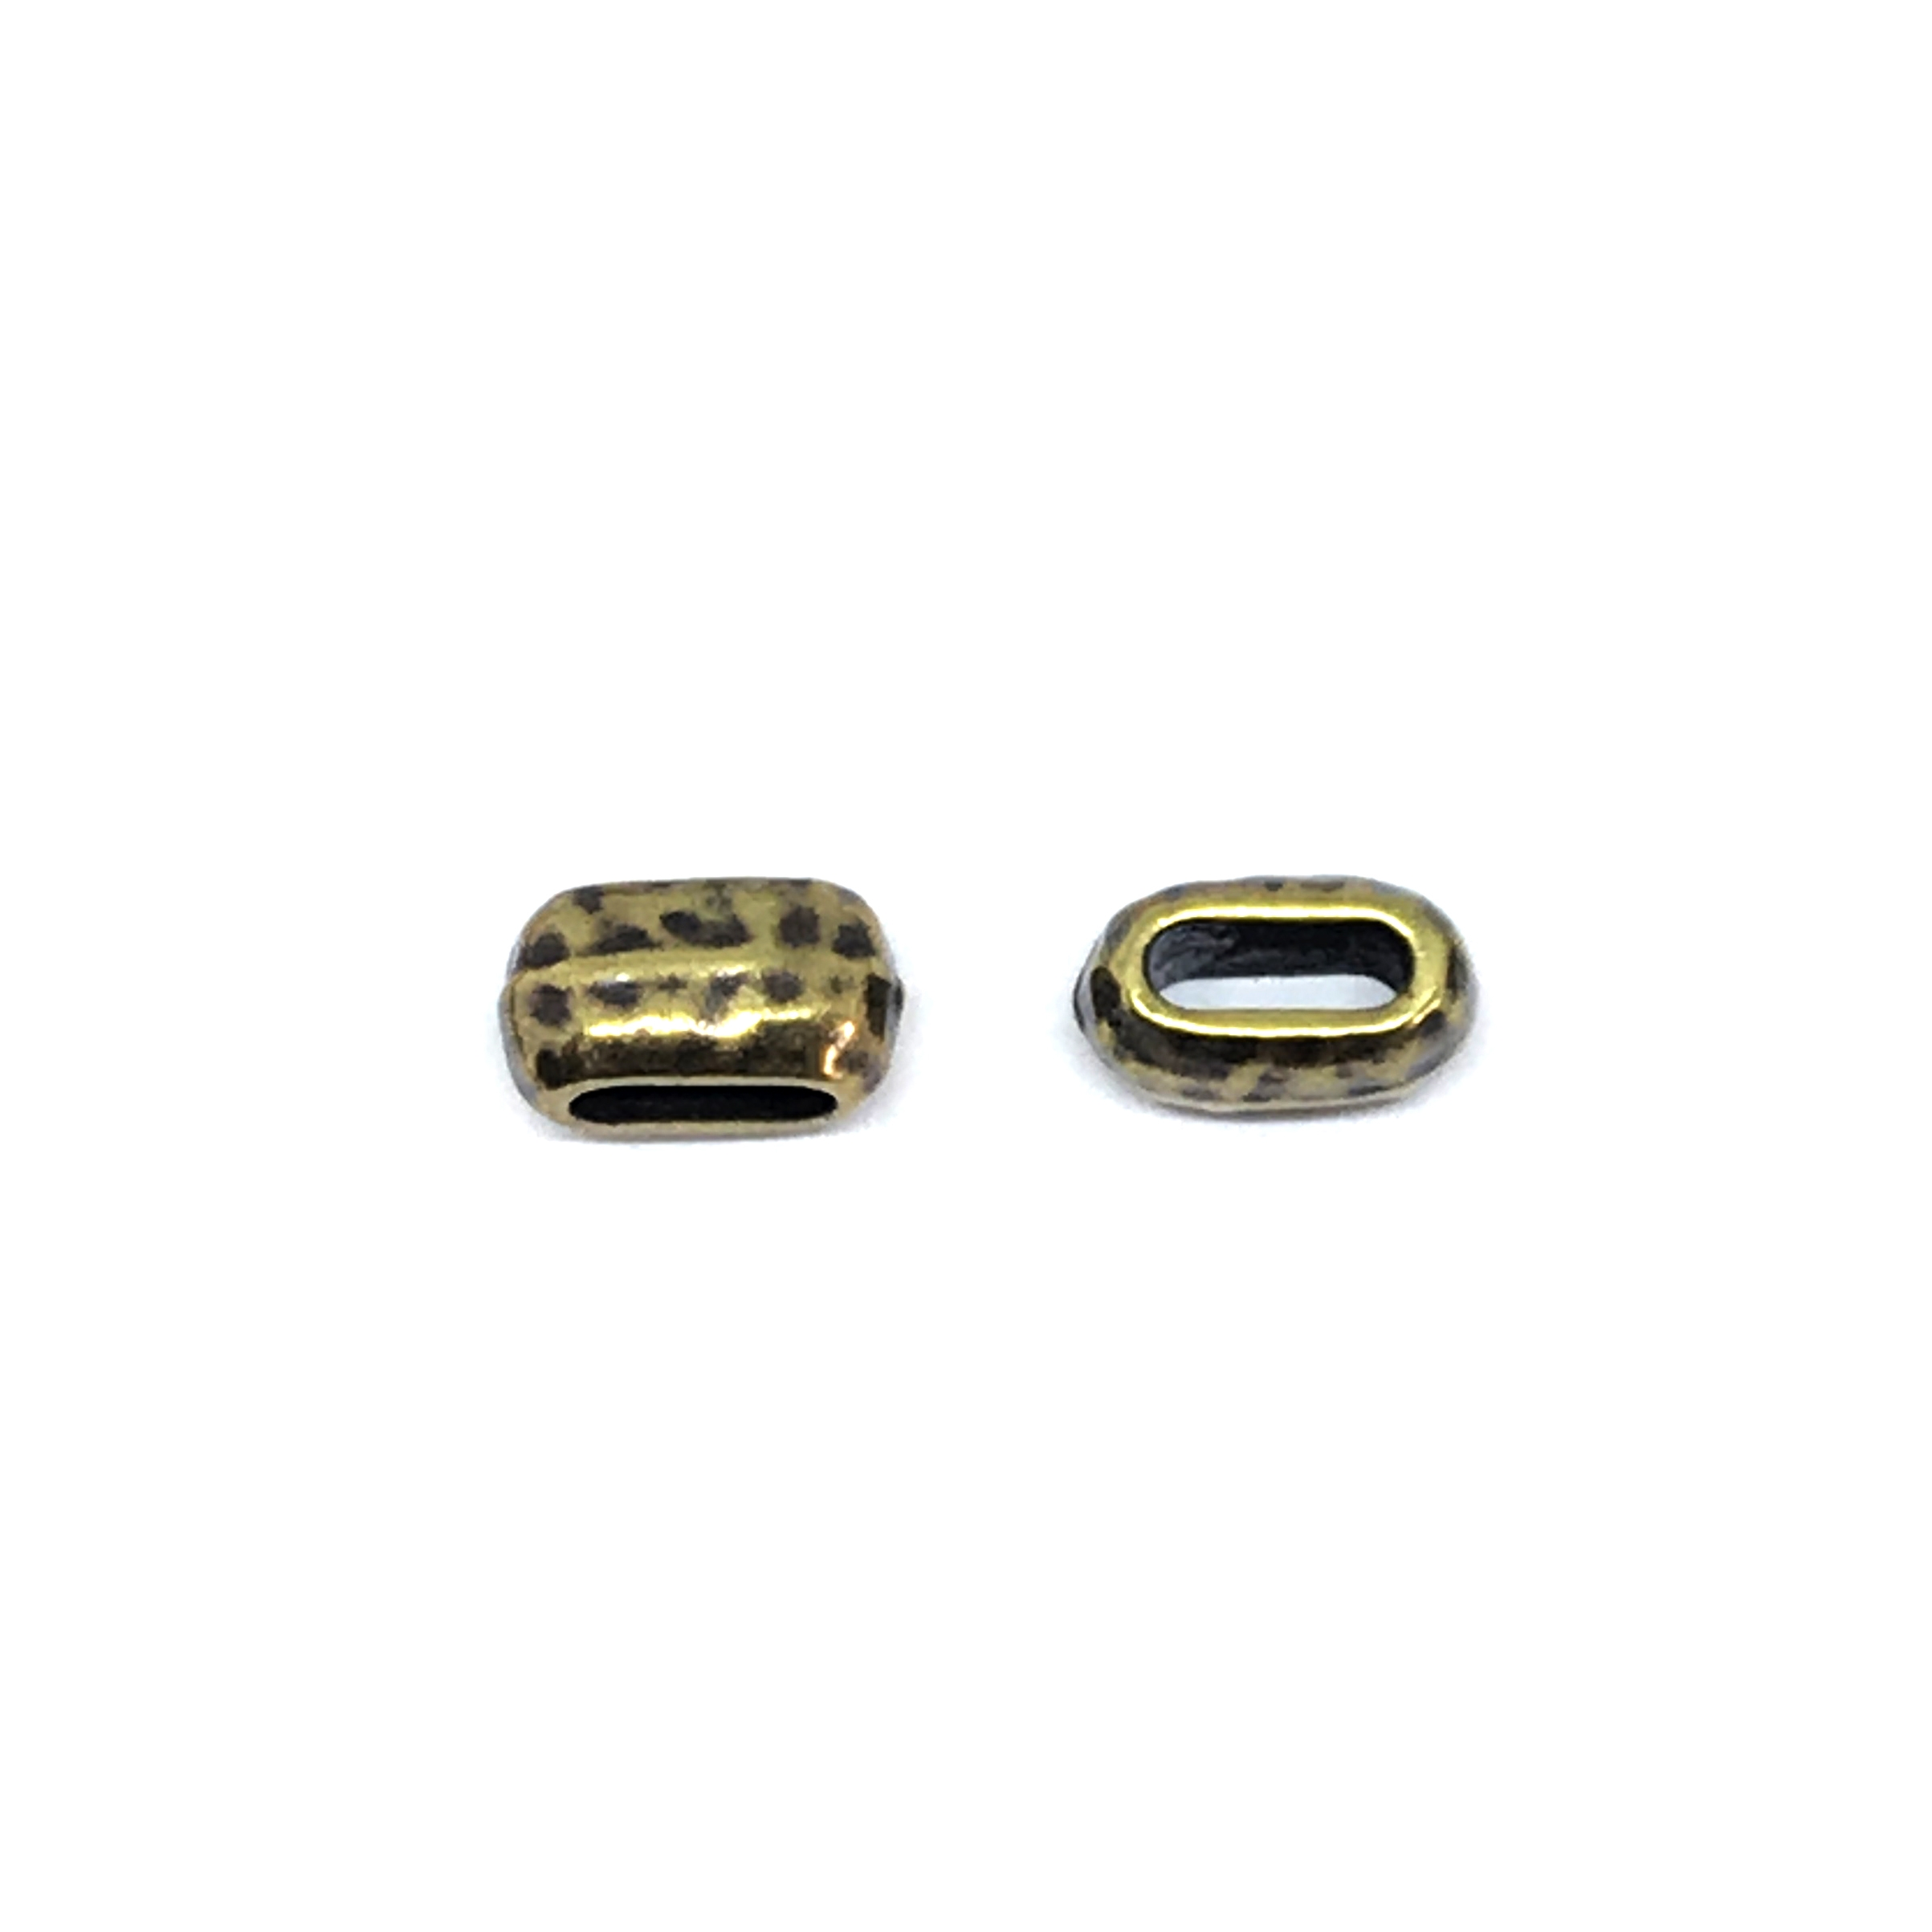 crimp end, cord end, connector, 01170, cordend, 6x10mm, brass ox, pewter base, brass plated antique finish, crimps, 2mm hole